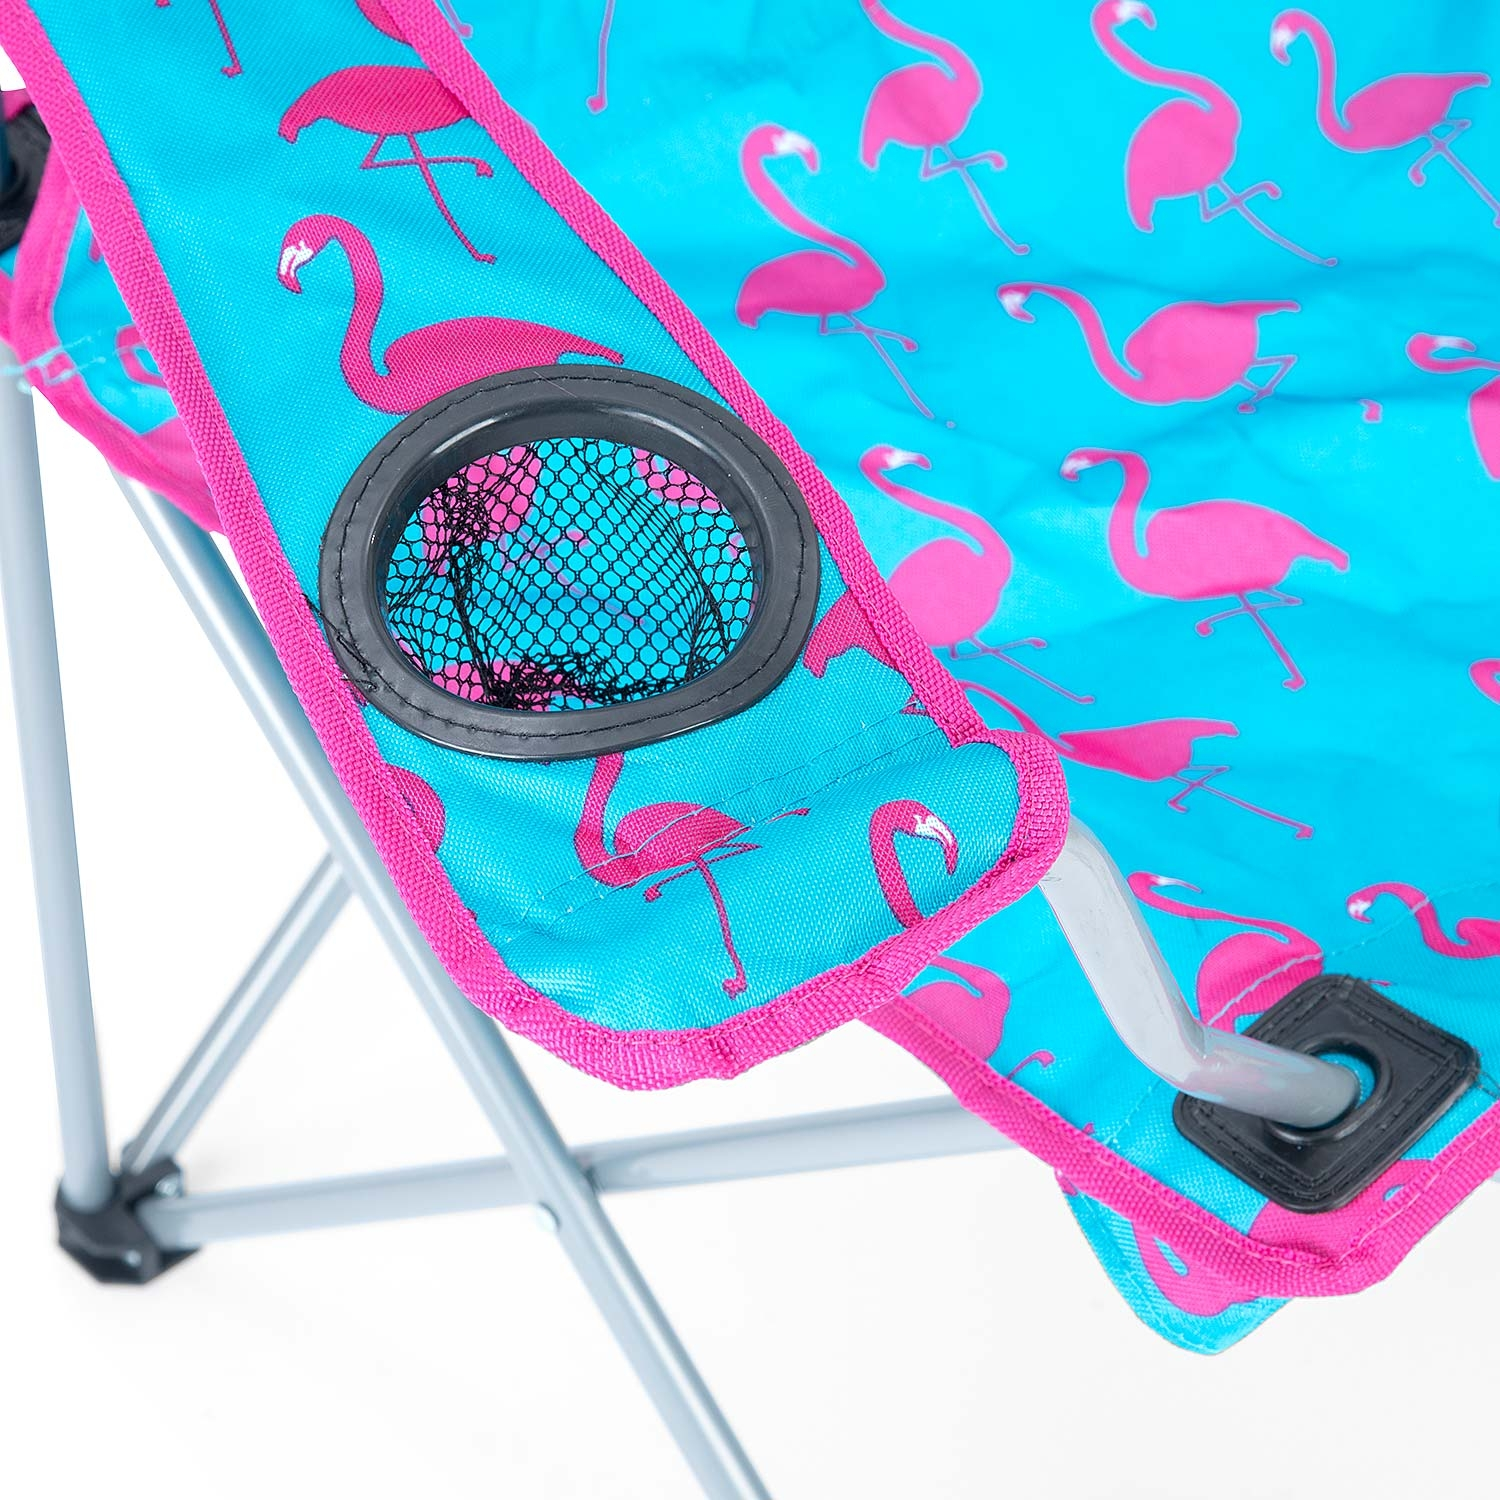 Folding-Camping-Chair-Lightweight-Beach-Festival-Outdoor-Travel-Seat-Flamingo thumbnail 7